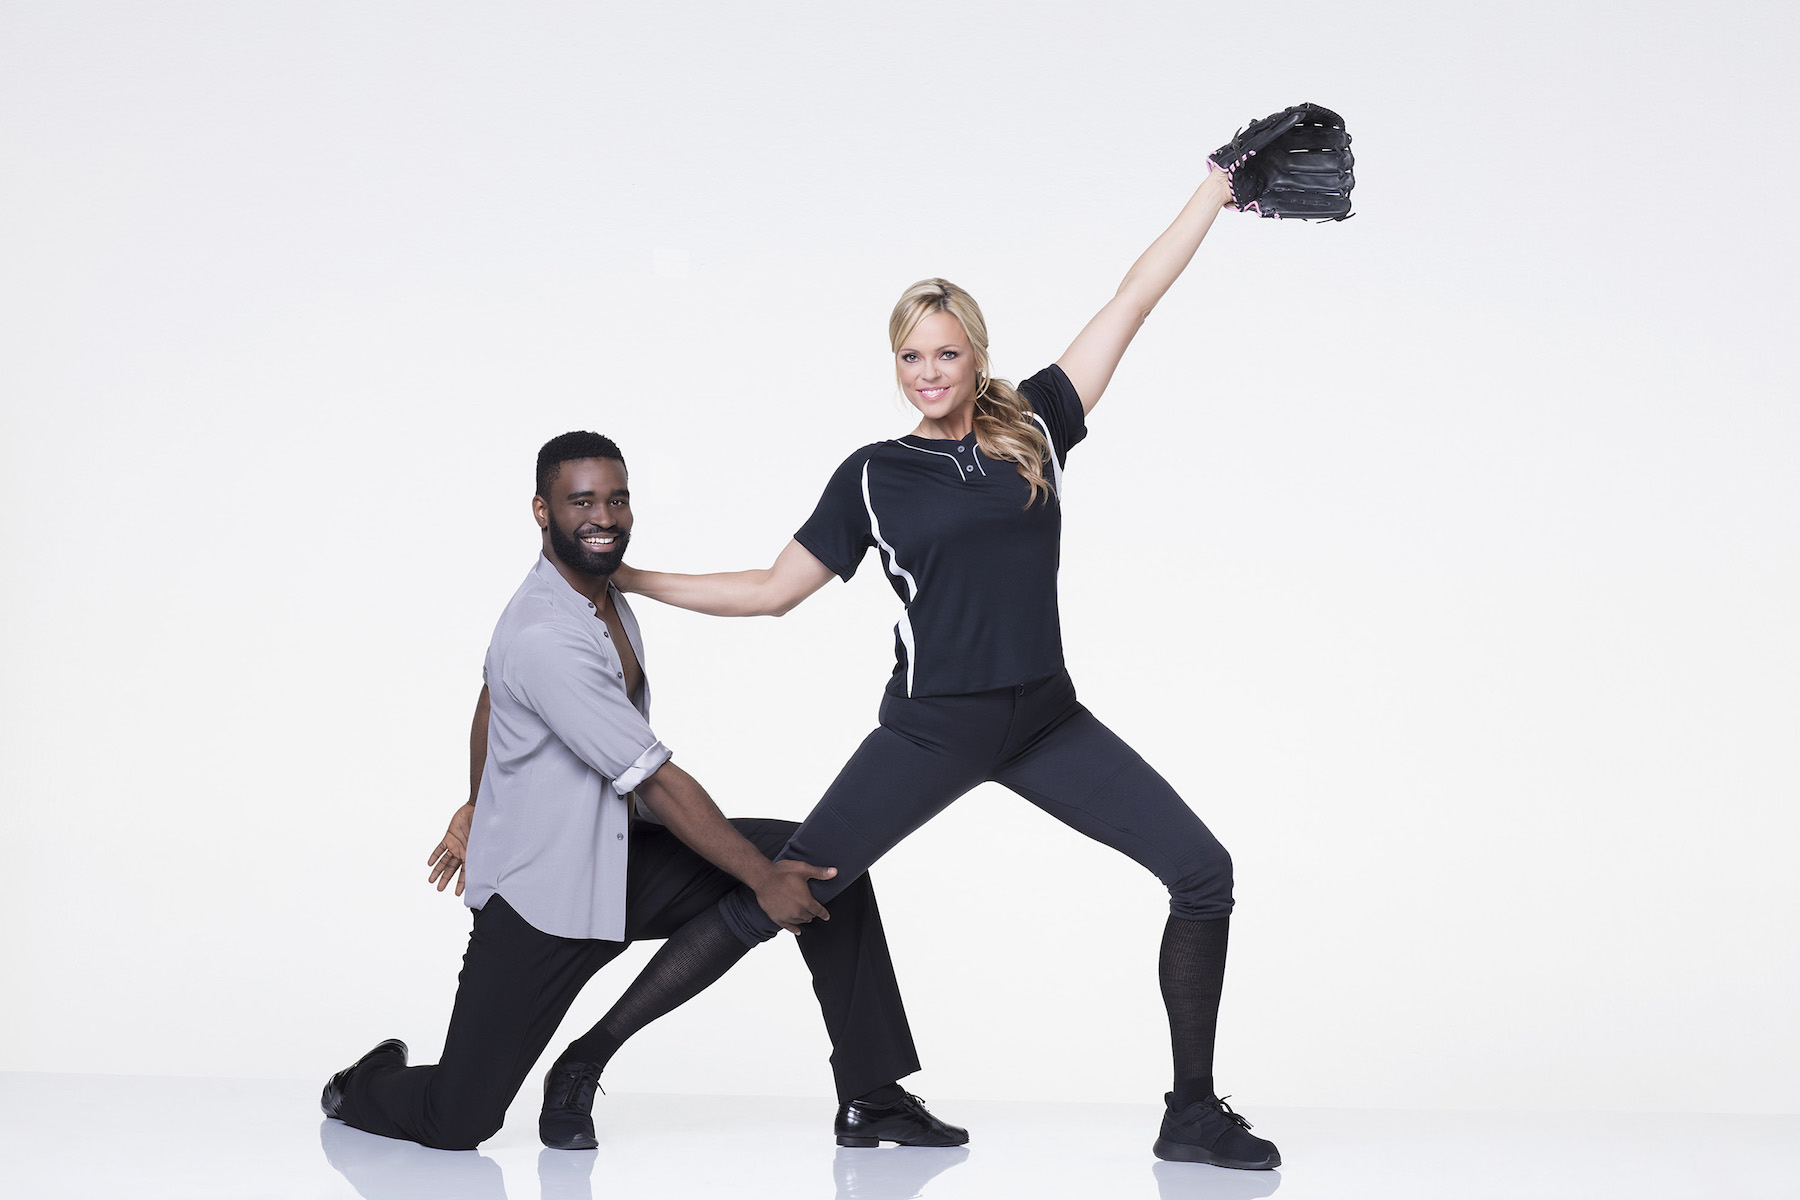 `Dancing with the Stars: Athletes`: ABC welcomes 10 athletes to sparkle up their uniforms and lace up their dancing shoes as they ready themselves for their first dance on the ballroom floor, on the season premiere of `Dancing with the Stars: Athletes,` Monday, April 30 (8-10:01 p.m.), on The ABC Television Network. (ABC photo by Craig Sjodin)